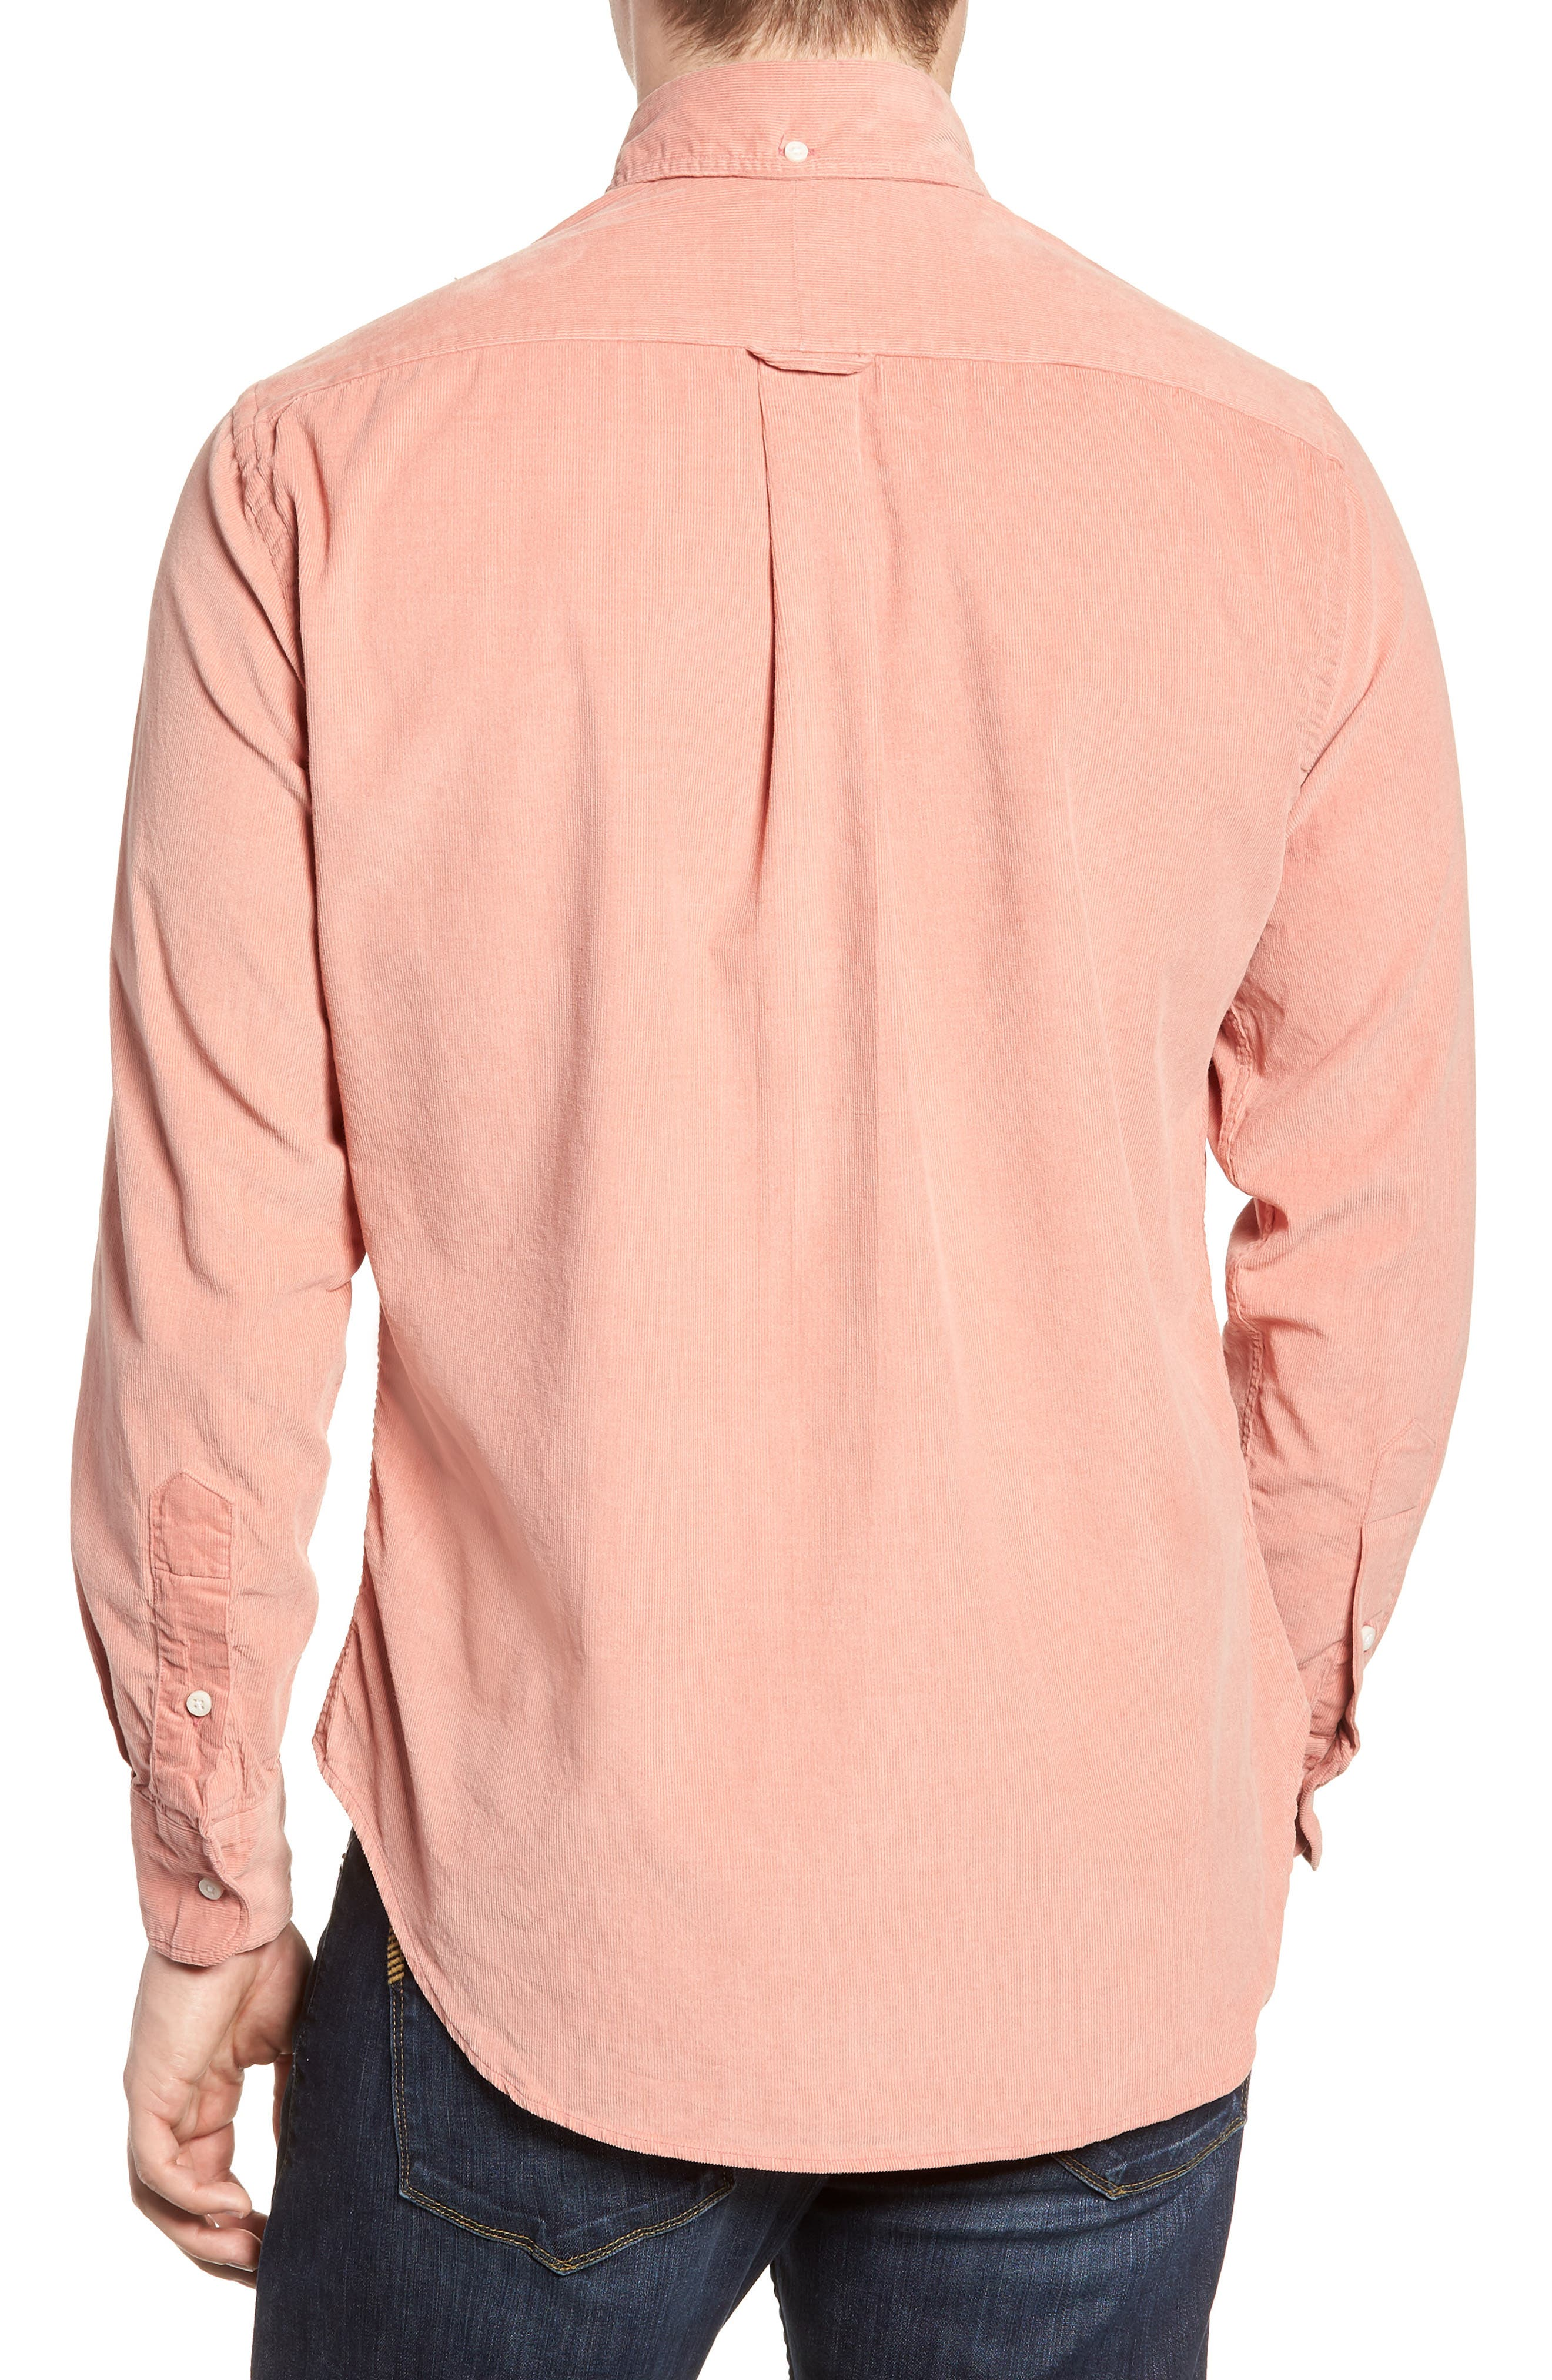 Regular Fit Corduroy Shirt,                             Alternate thumbnail 3, color,                             PINK